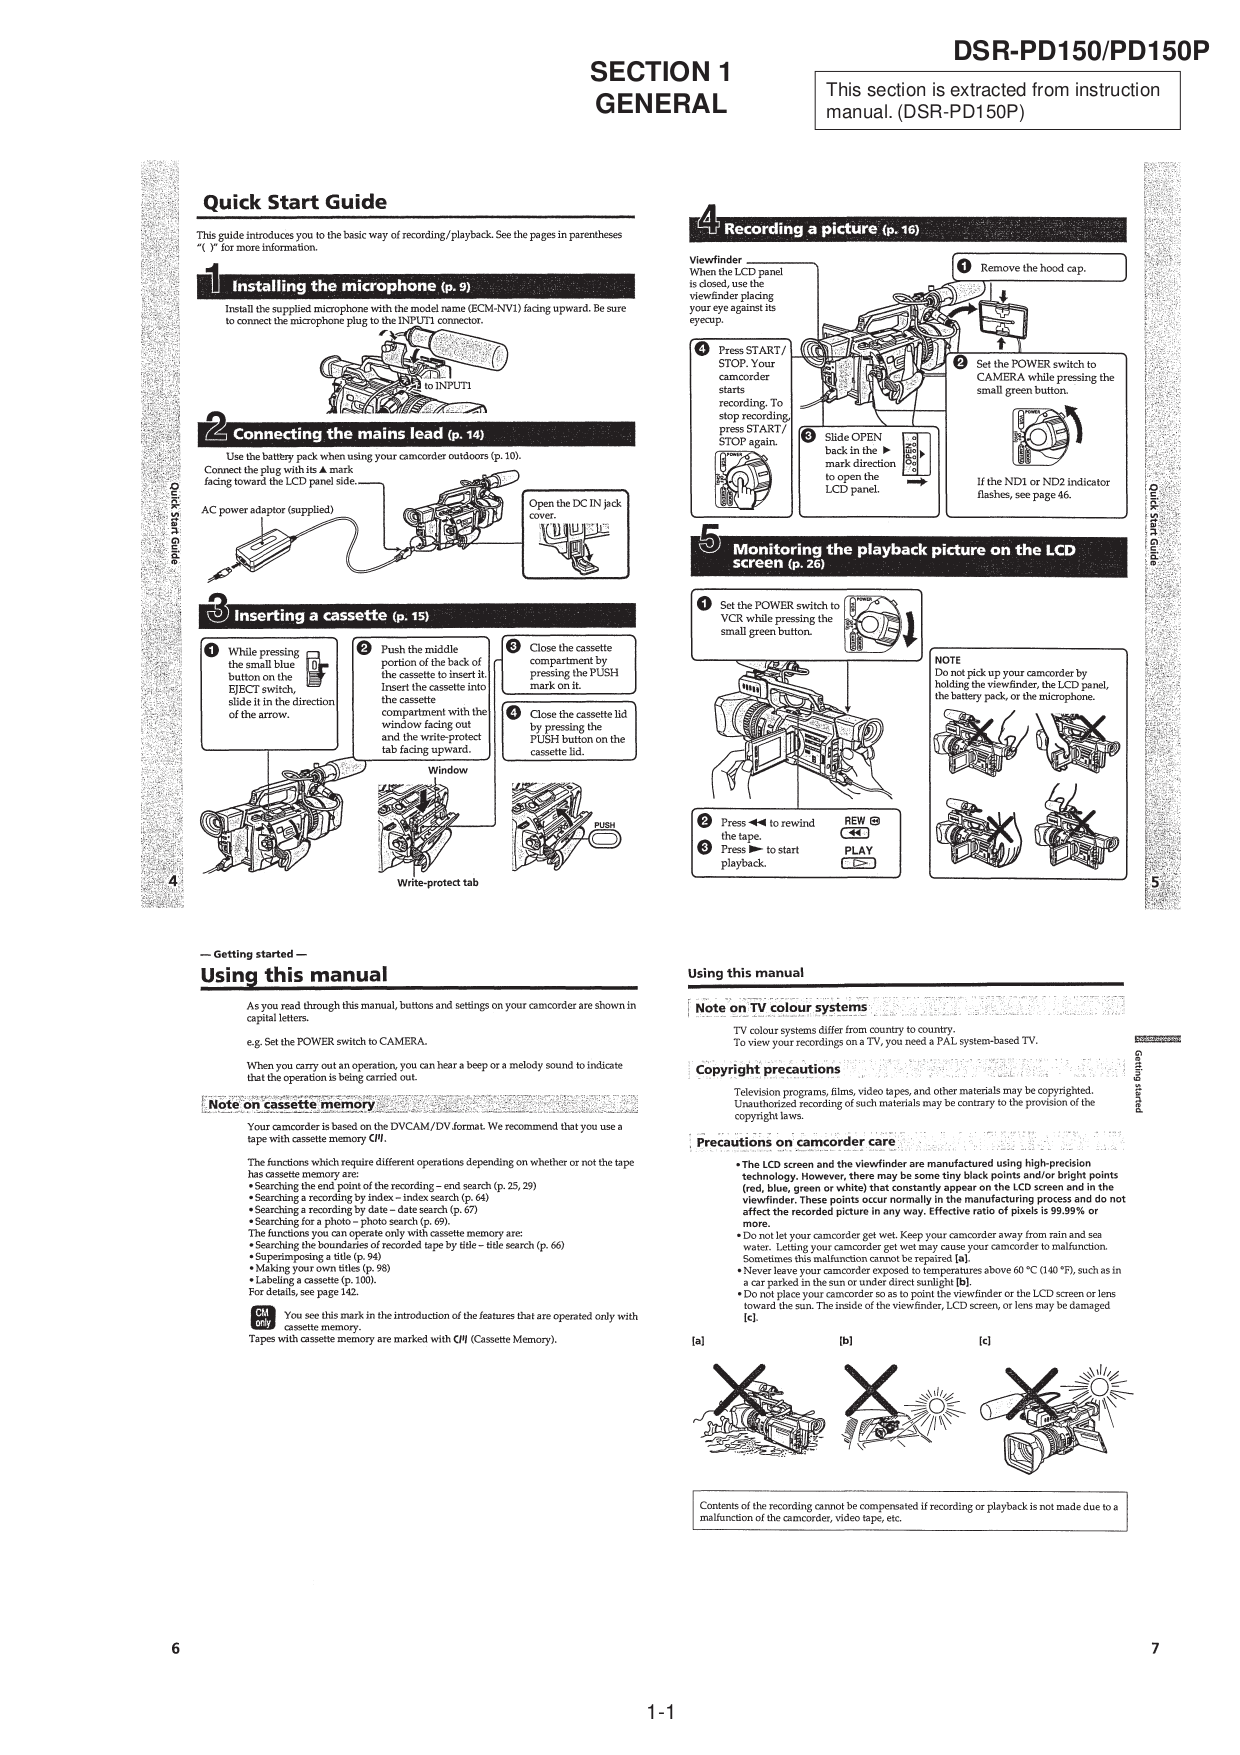 PDF manual for Sony Camcorders DSR-PD150